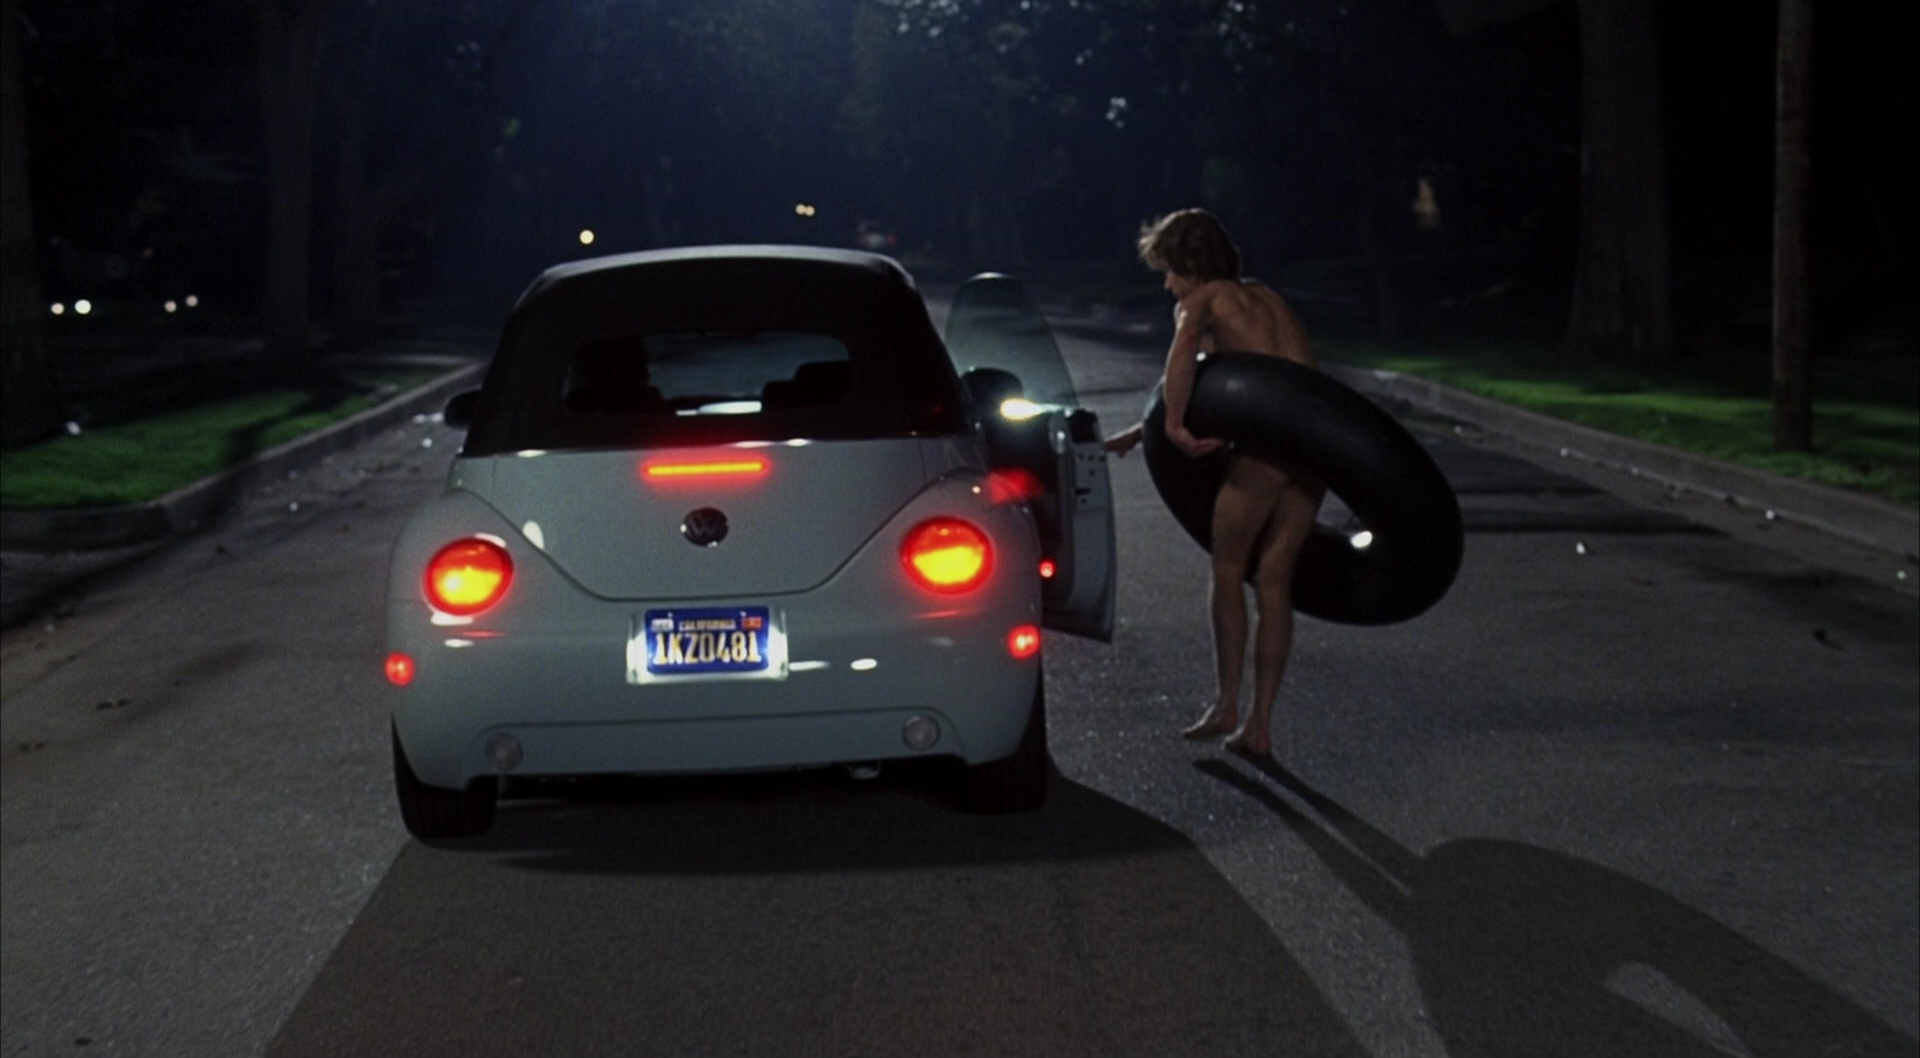 New Volvo Xc90 >> Volkswagen Beetle Cabriolet Car - The Girl Next Door (2004 ...